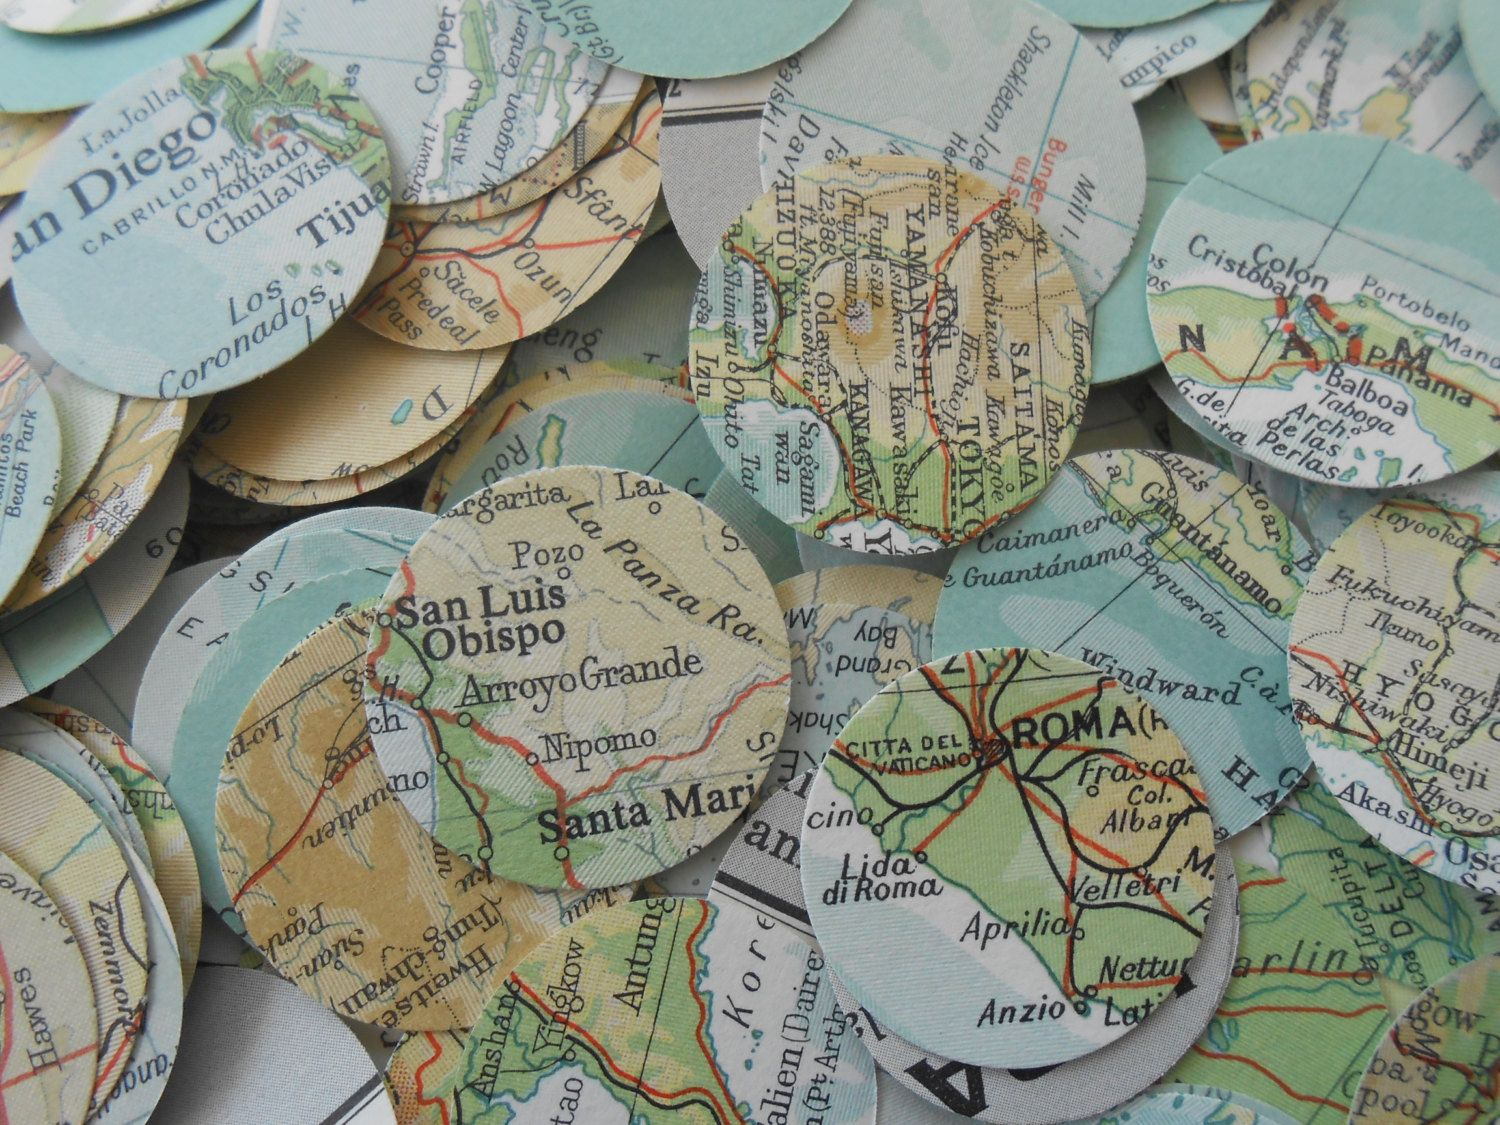 1000 vintage map confetti teal ivory ochre beige green world 1000 vintage map confetti teal ivory ochre beige green world map or choose your map heart shaped custom orders welcome gumiabroncs Images